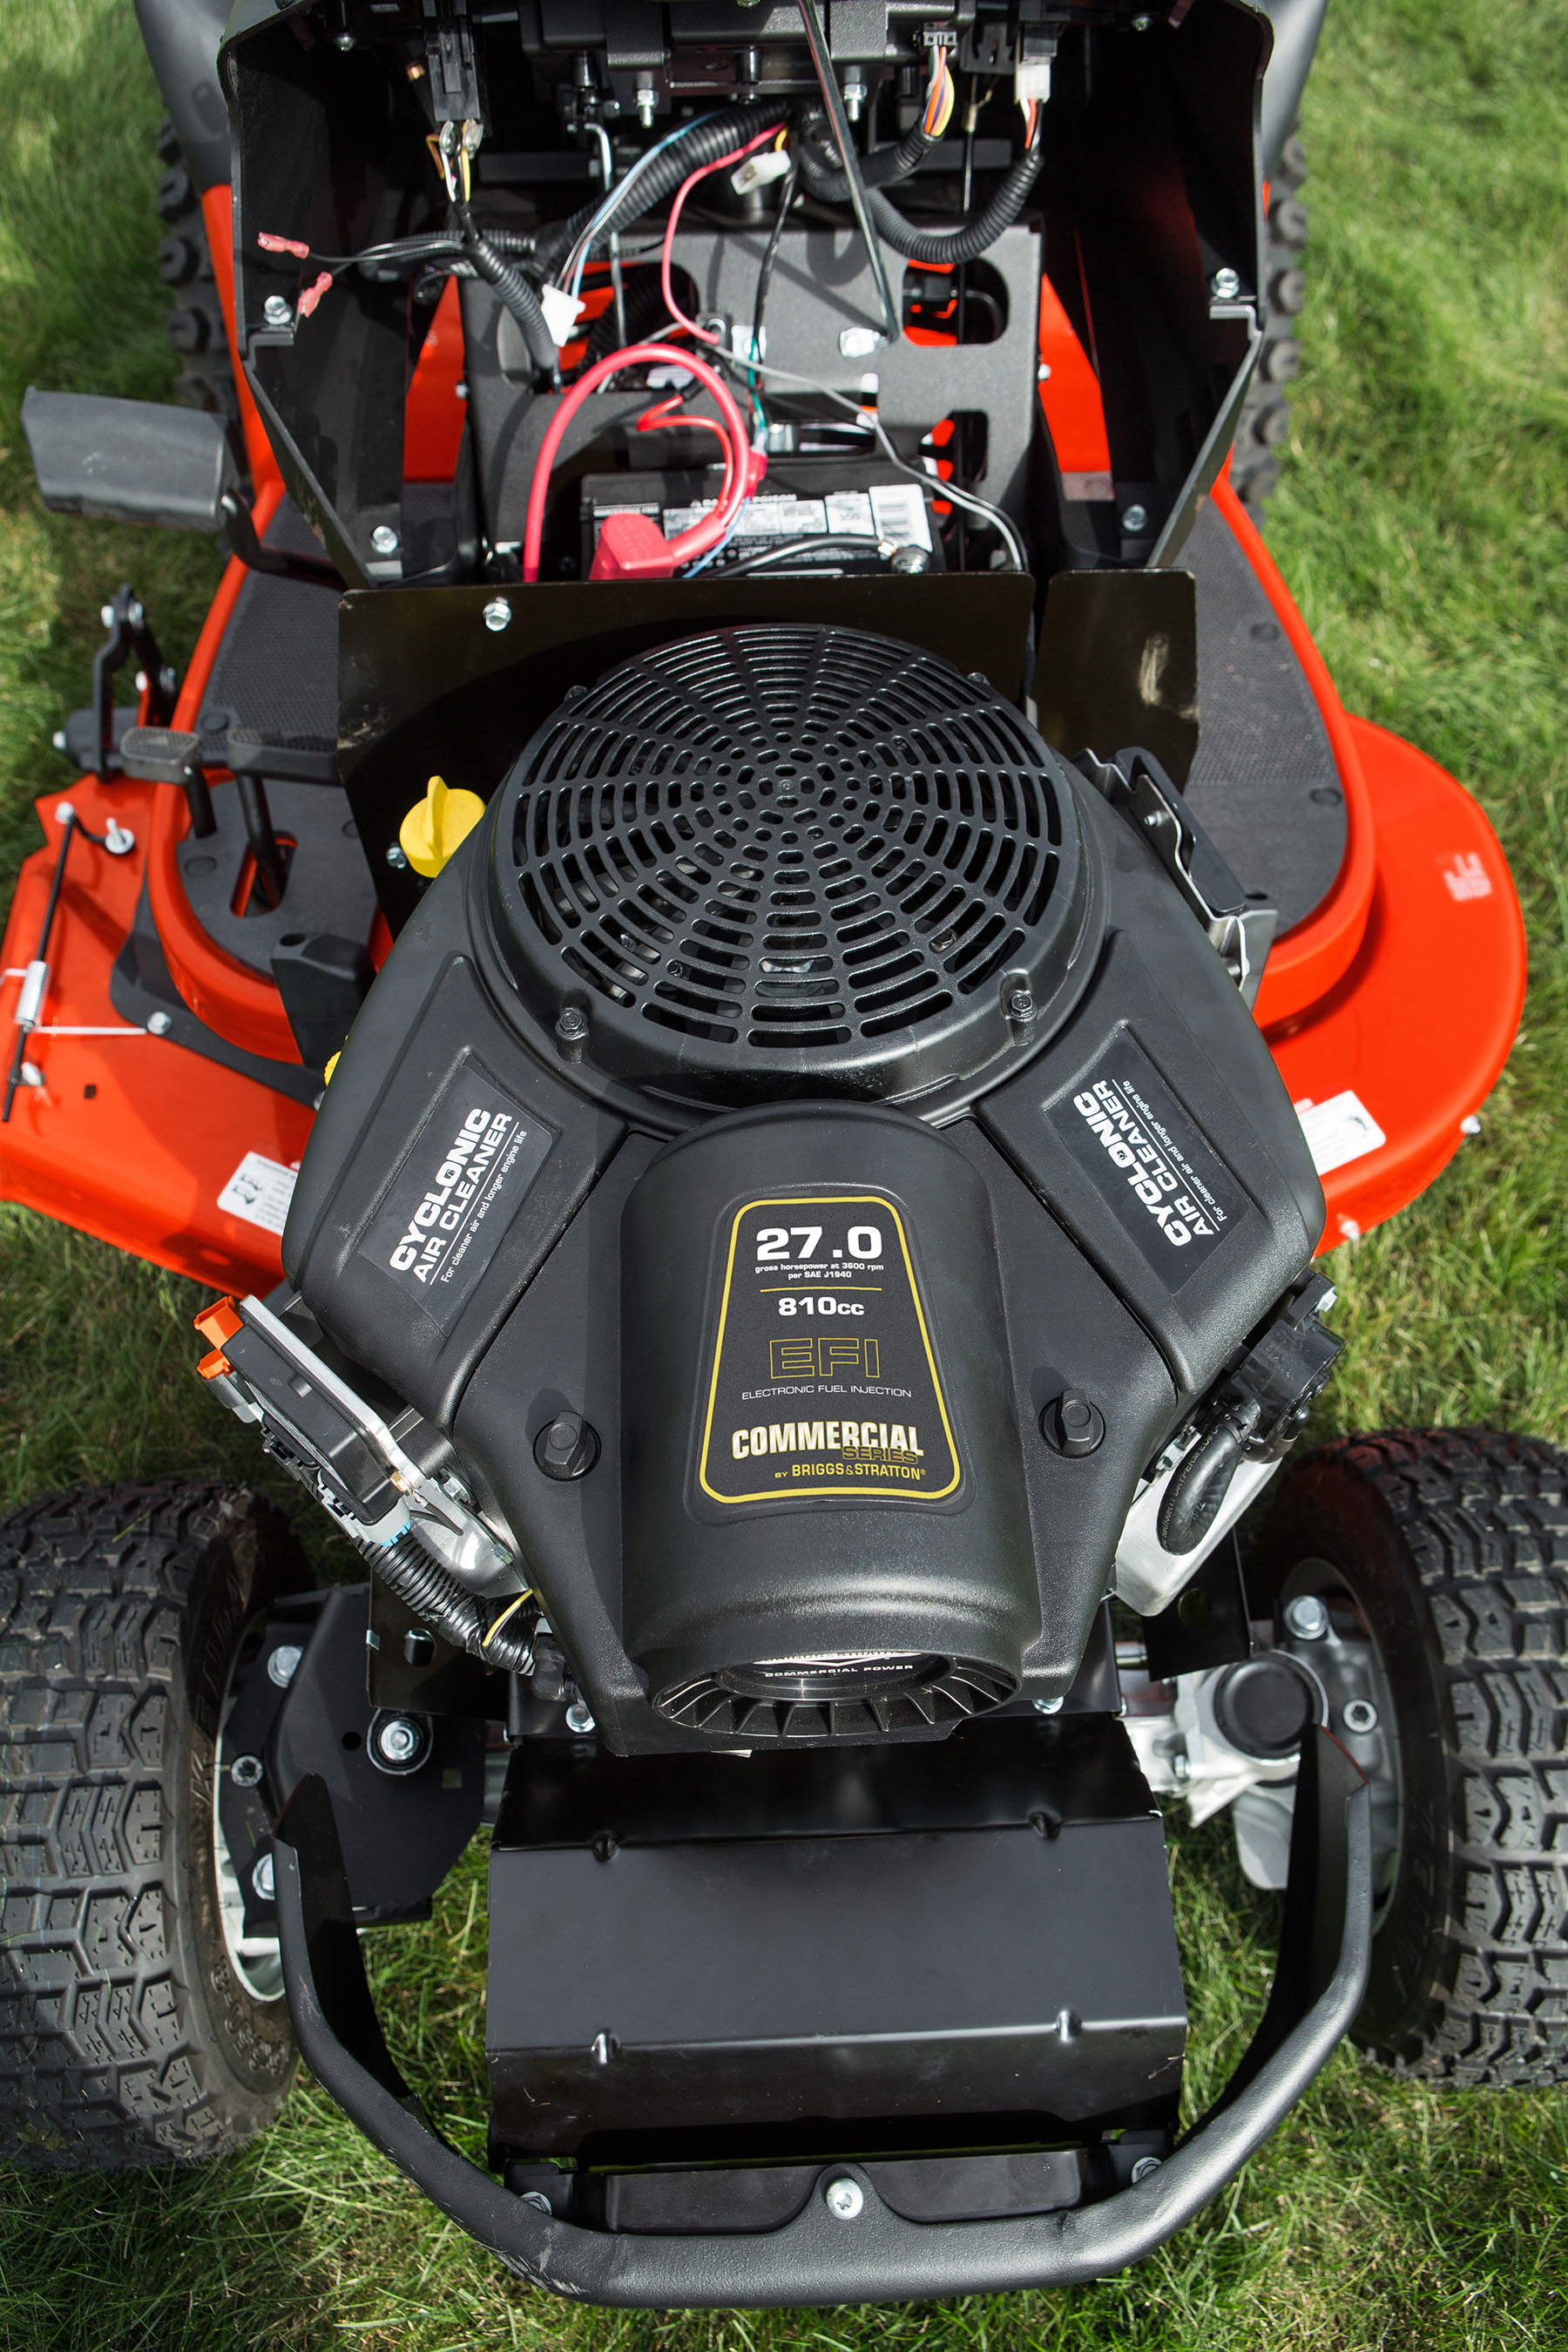 The Briggs & Stratton Commercial Series engine with electronic fuel injection offers consistent, reliable starting, smart load sensing technology, fuel protection and up to 15% fuel savings (depending on operating conditions).